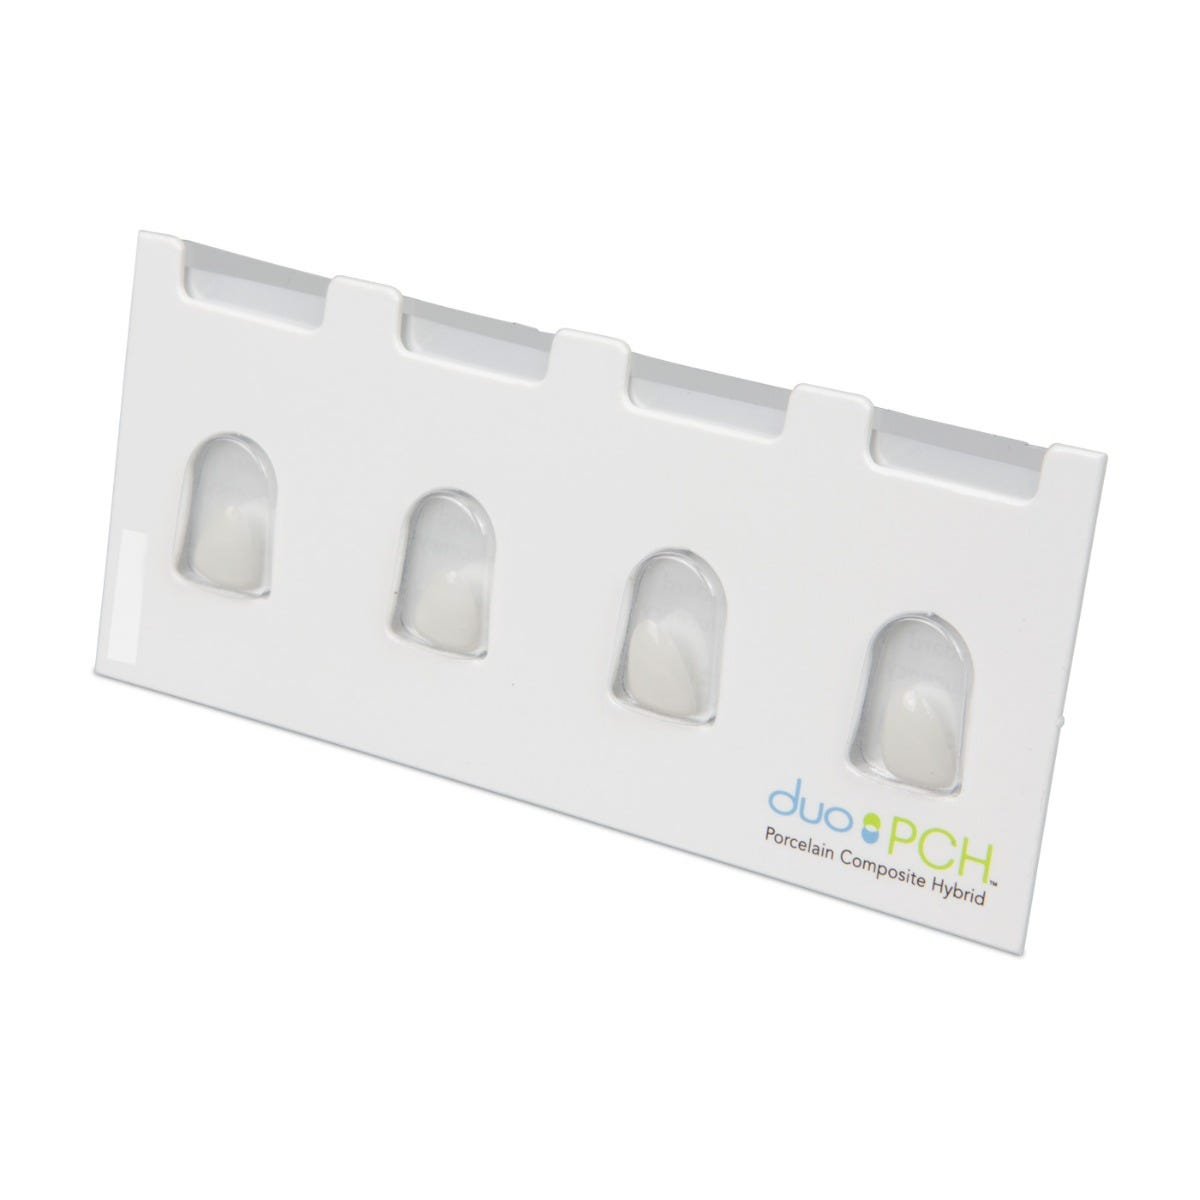 Duo PCH - Extra Small Uppers Cuspids #6/11- B1 Standard Translucency